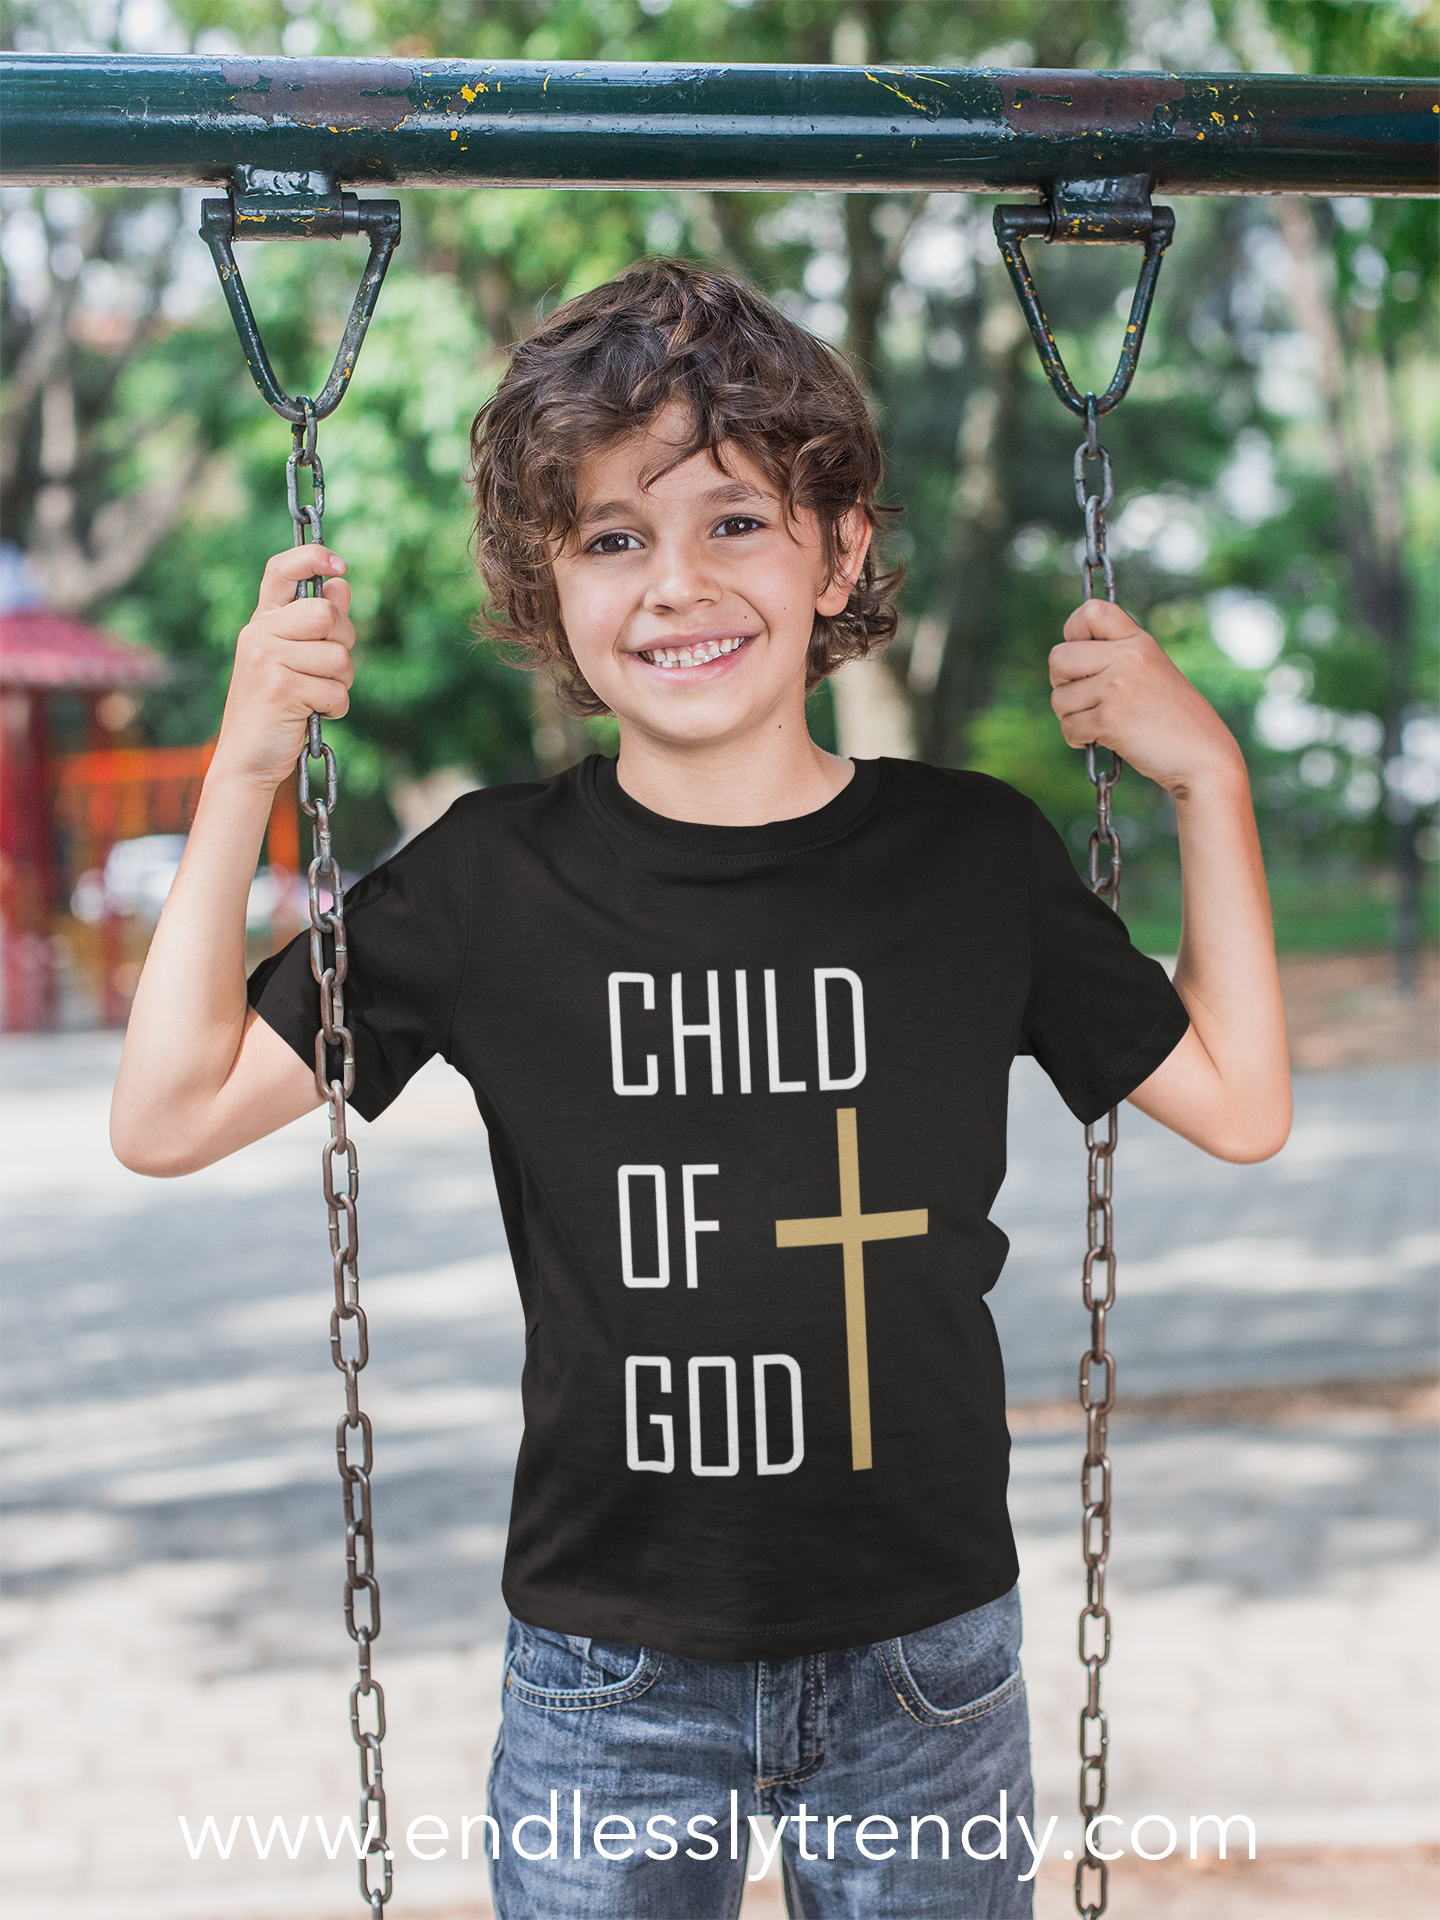 Child of God Tee - Endlessly Trendy Boutique